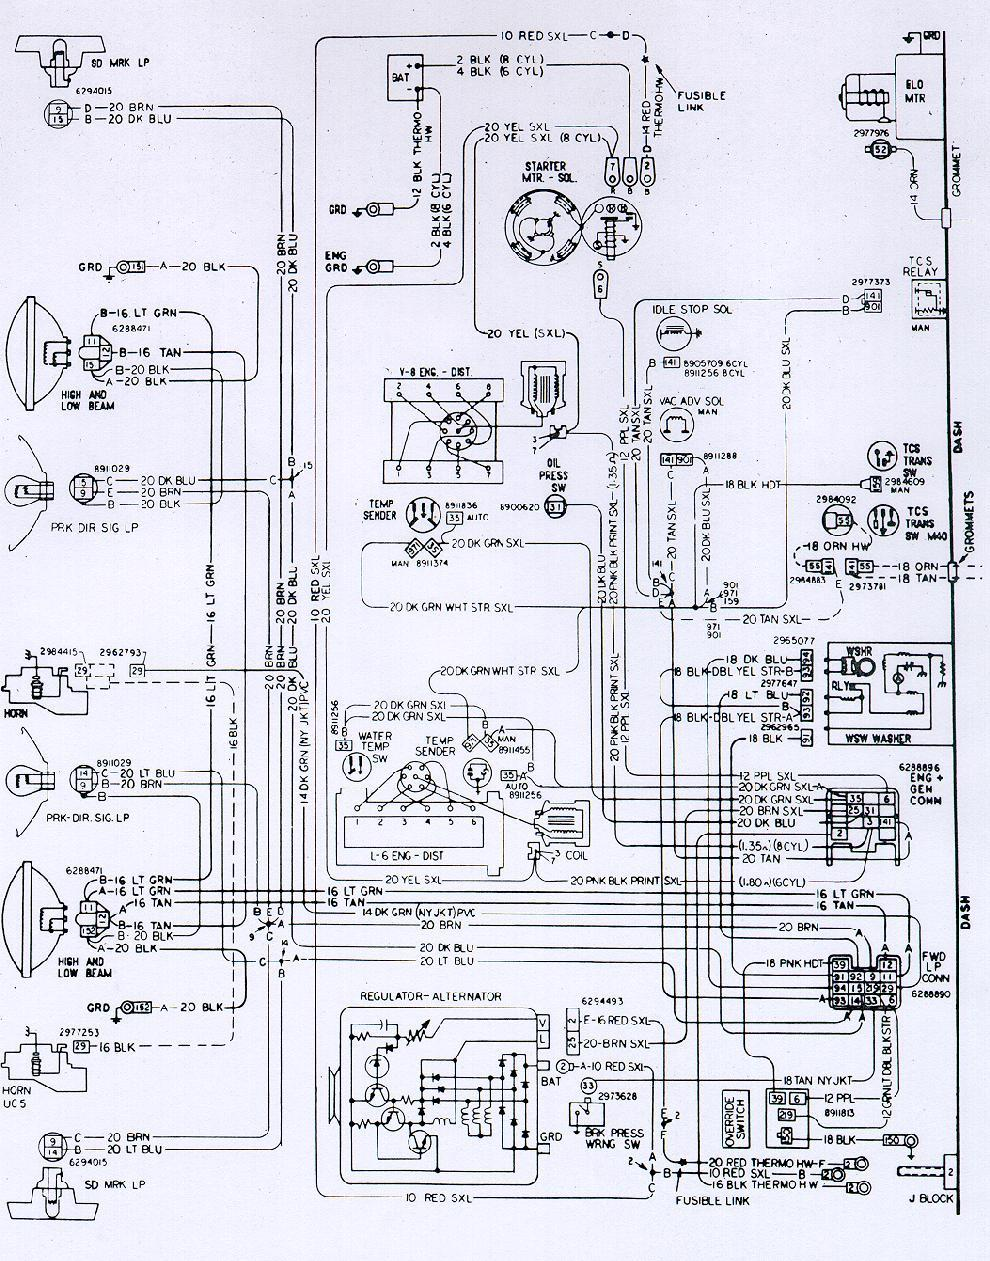 1971 Camaro Wiper Wiring Diagram Gota Wiring Diagram